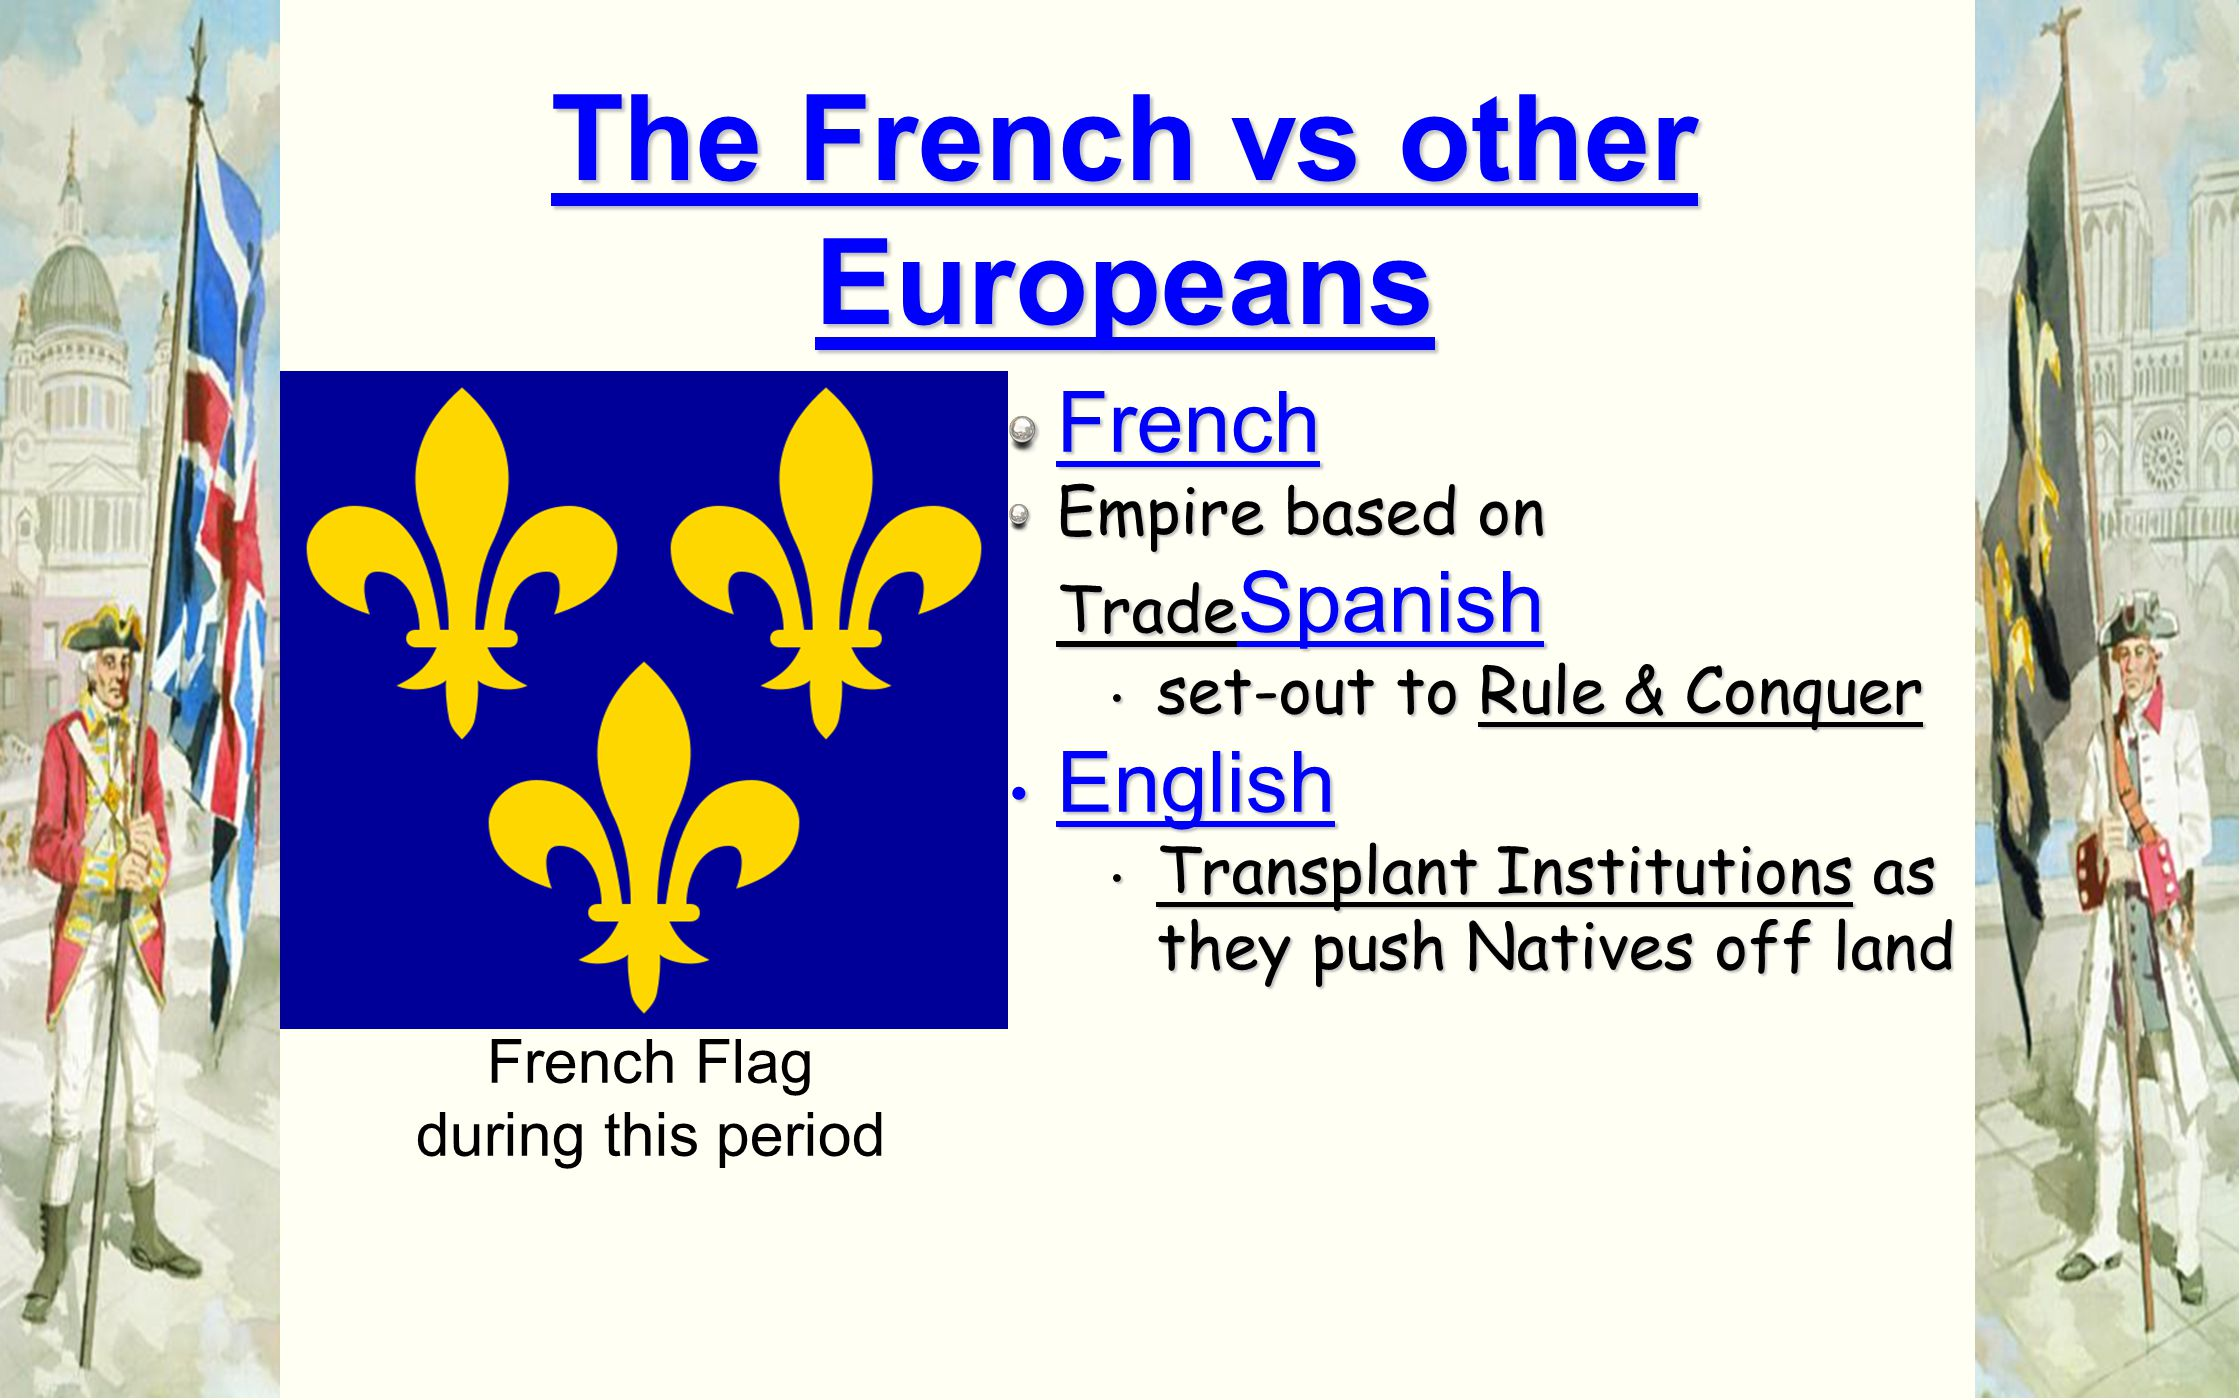 French Empire based on Trade Spanish set-out to Rule & Conquer set-out to Rule & Conquer English English Transplant Institutions as they push Natives